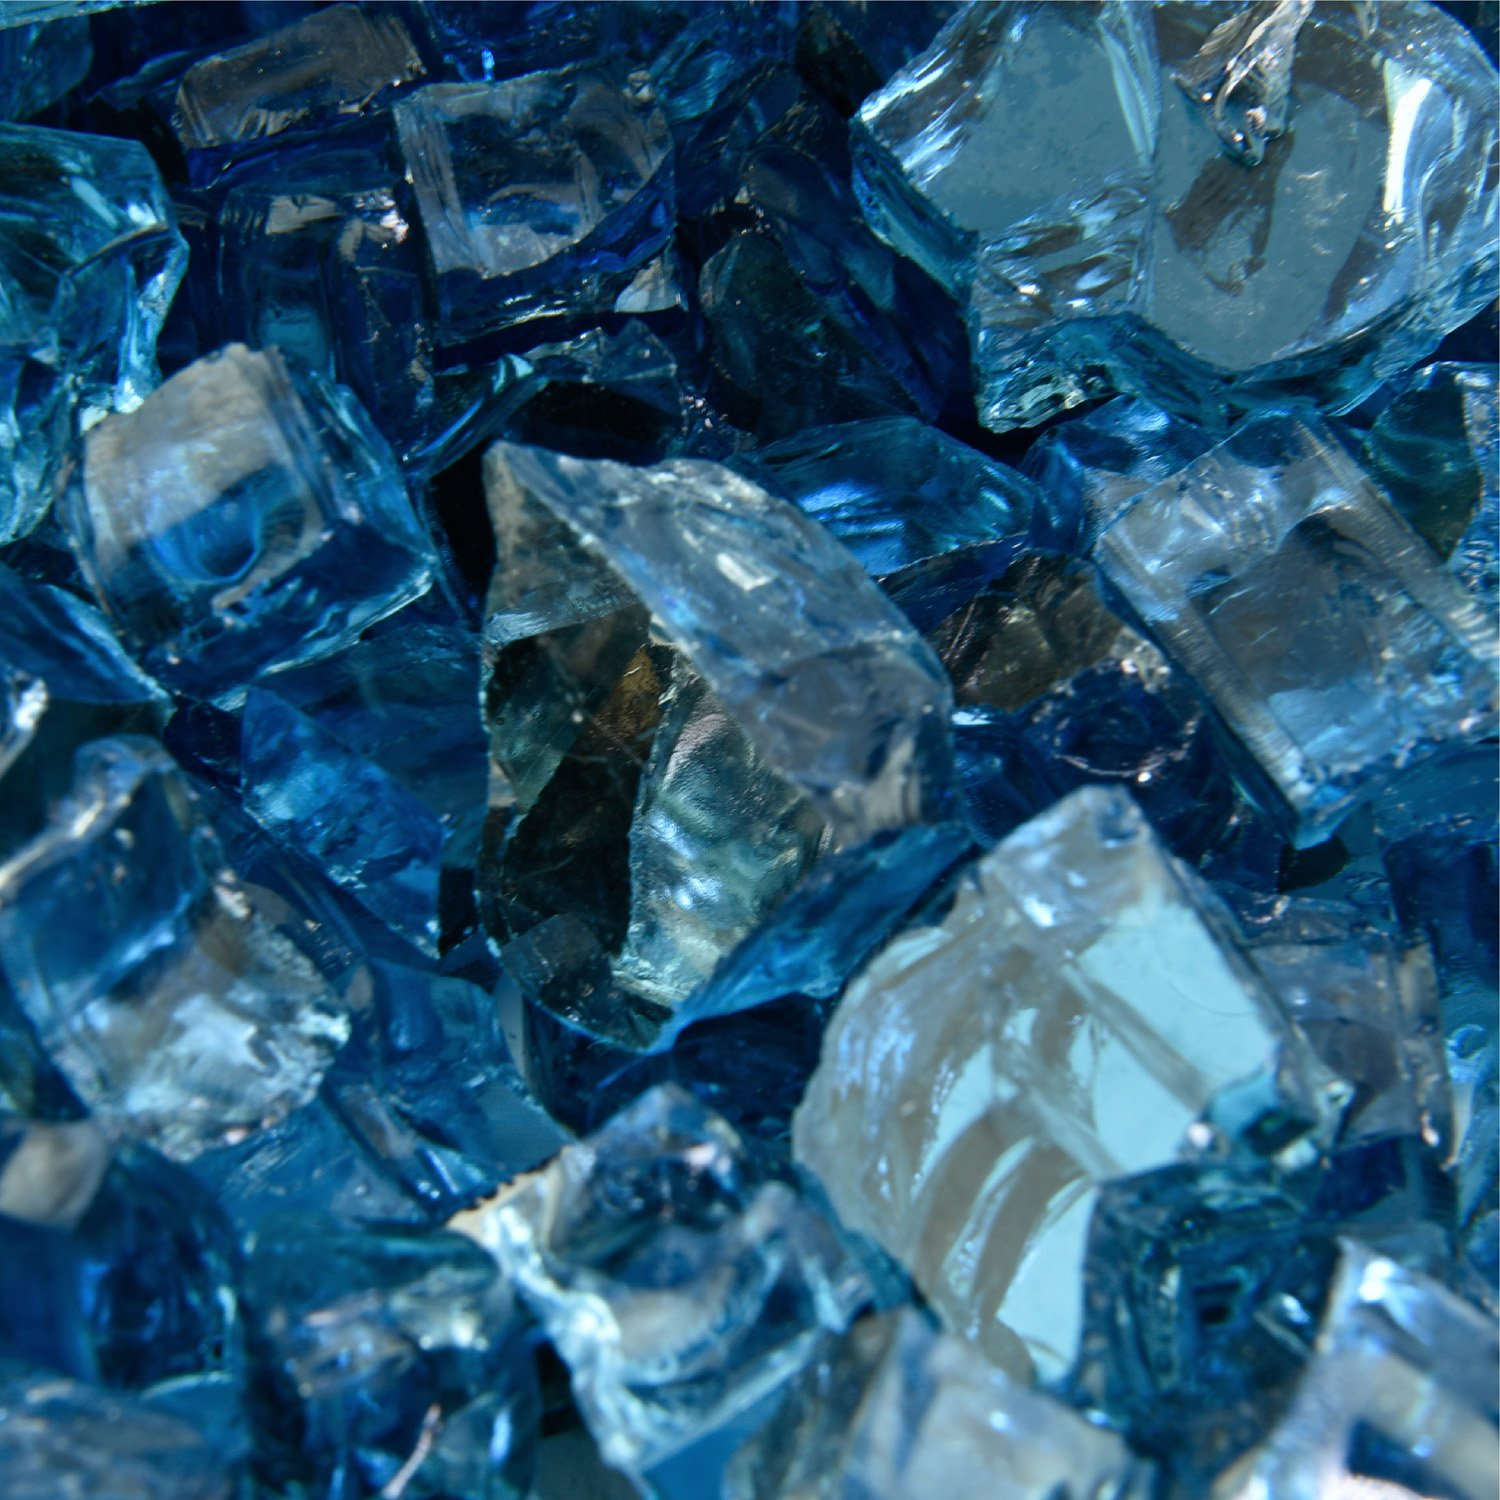 Harbor Mist - Fire Glass for Indoor and Outdoor Fire Pits or Fireplaces | 10 Pounds | 1/2 Inch, Reflective